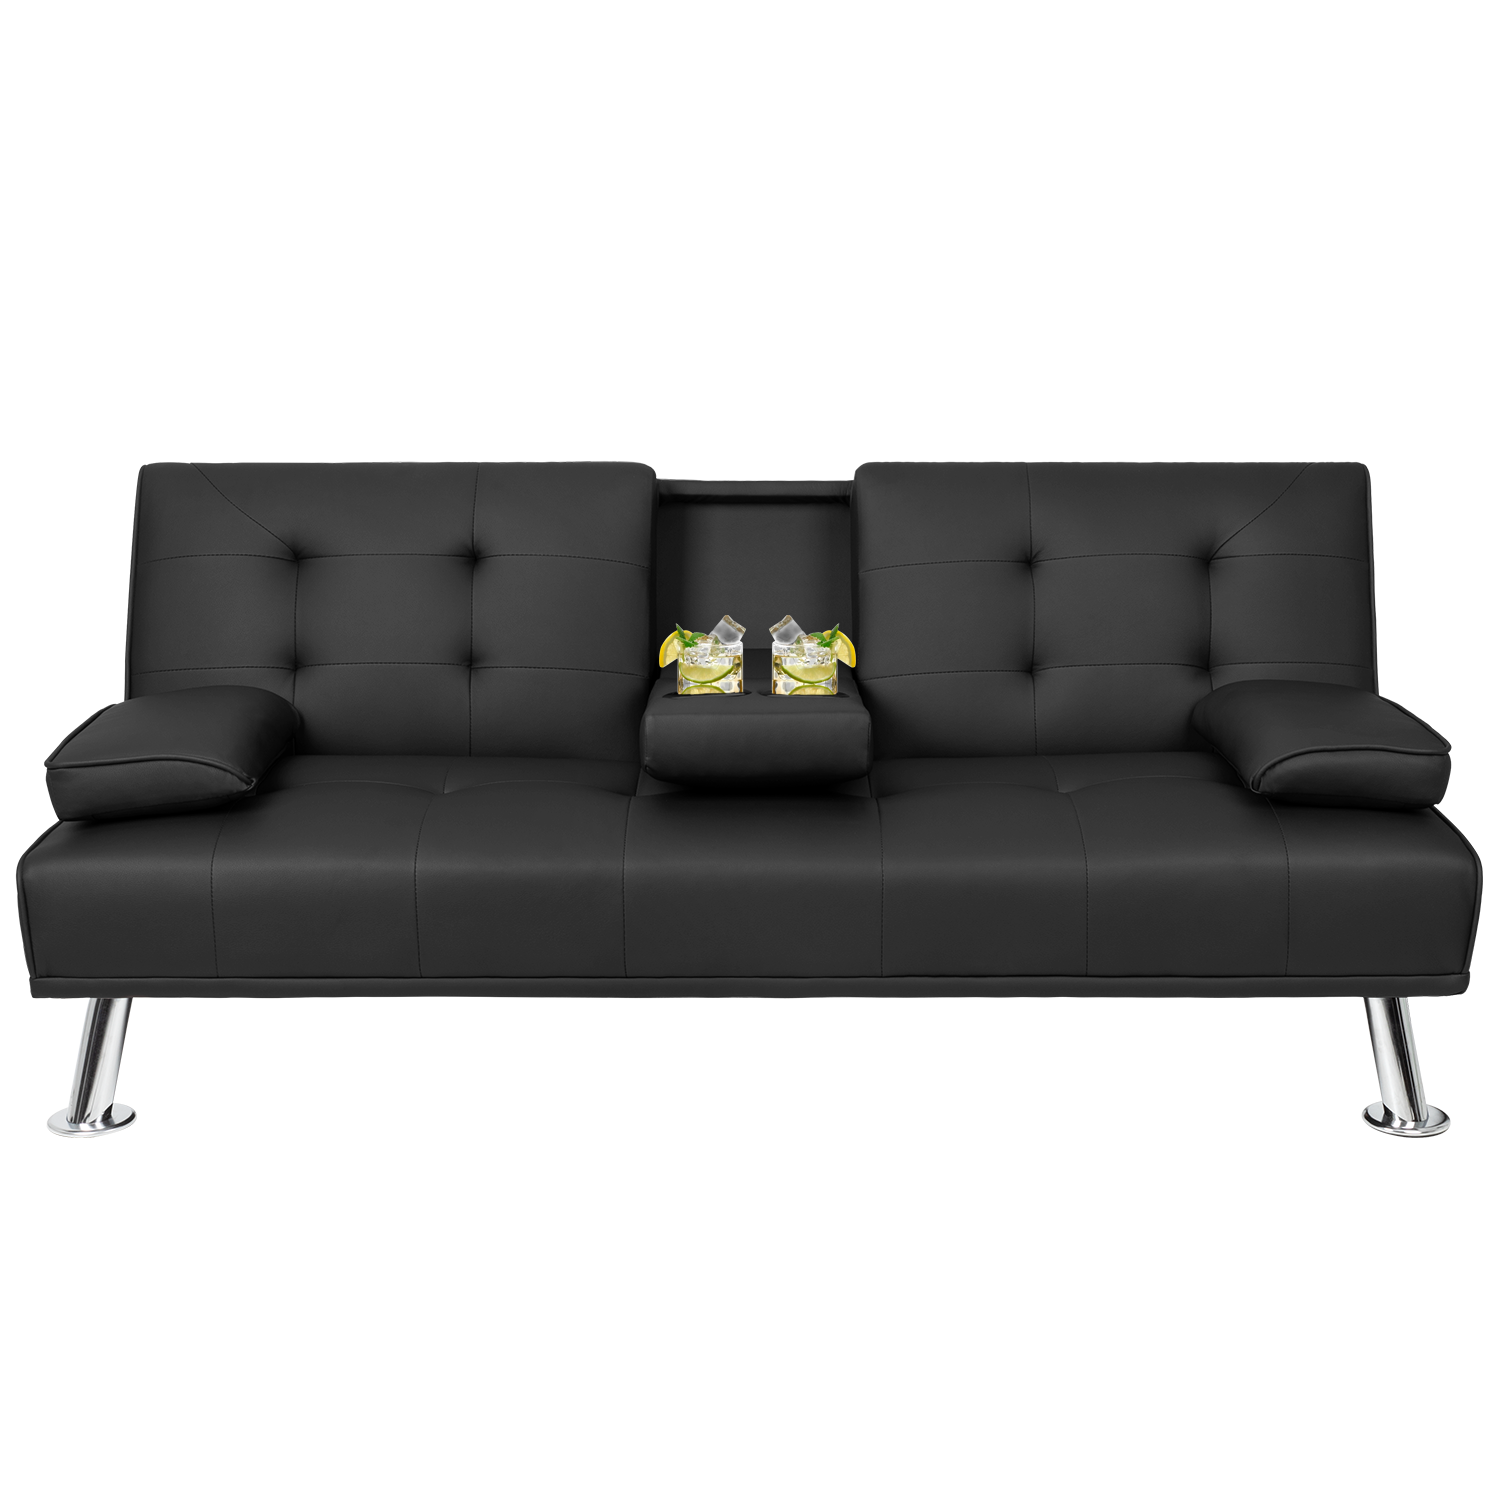 Walnew Modern PU Leather Convertible Futon with Cupholders & Pillows, Black